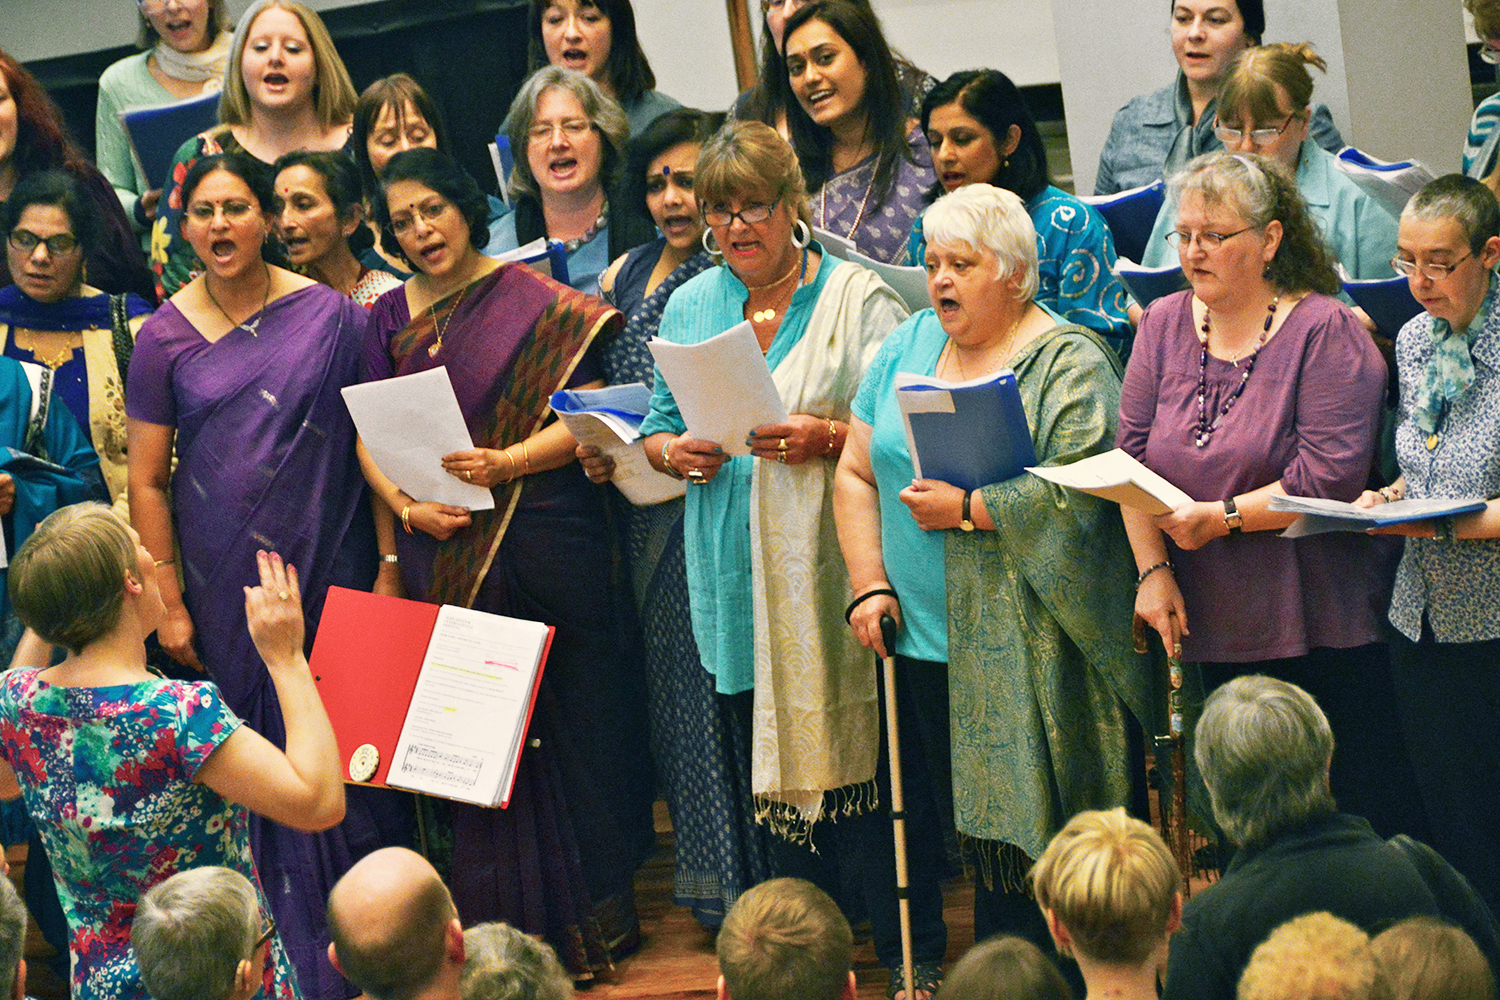 Sacred Sounds Women's Choir performing at the MIF13 Volunteers Launch Event at The Whitworth Art Gallery Photo: Robert Martin for Manchester International Festival